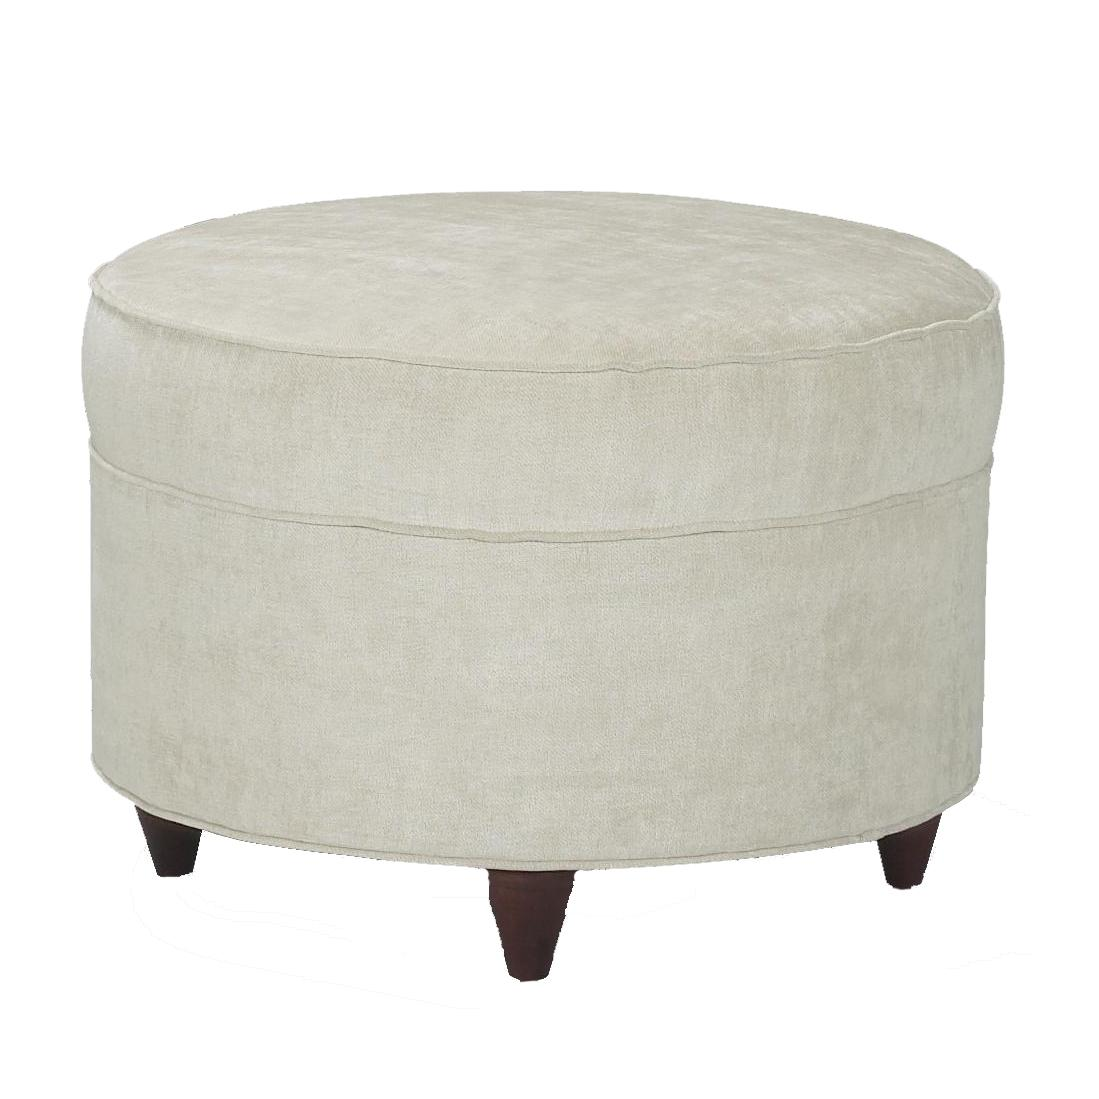 Klaussner Chairs and Accents Orbit Ottoman - Item Number: 1OTTO